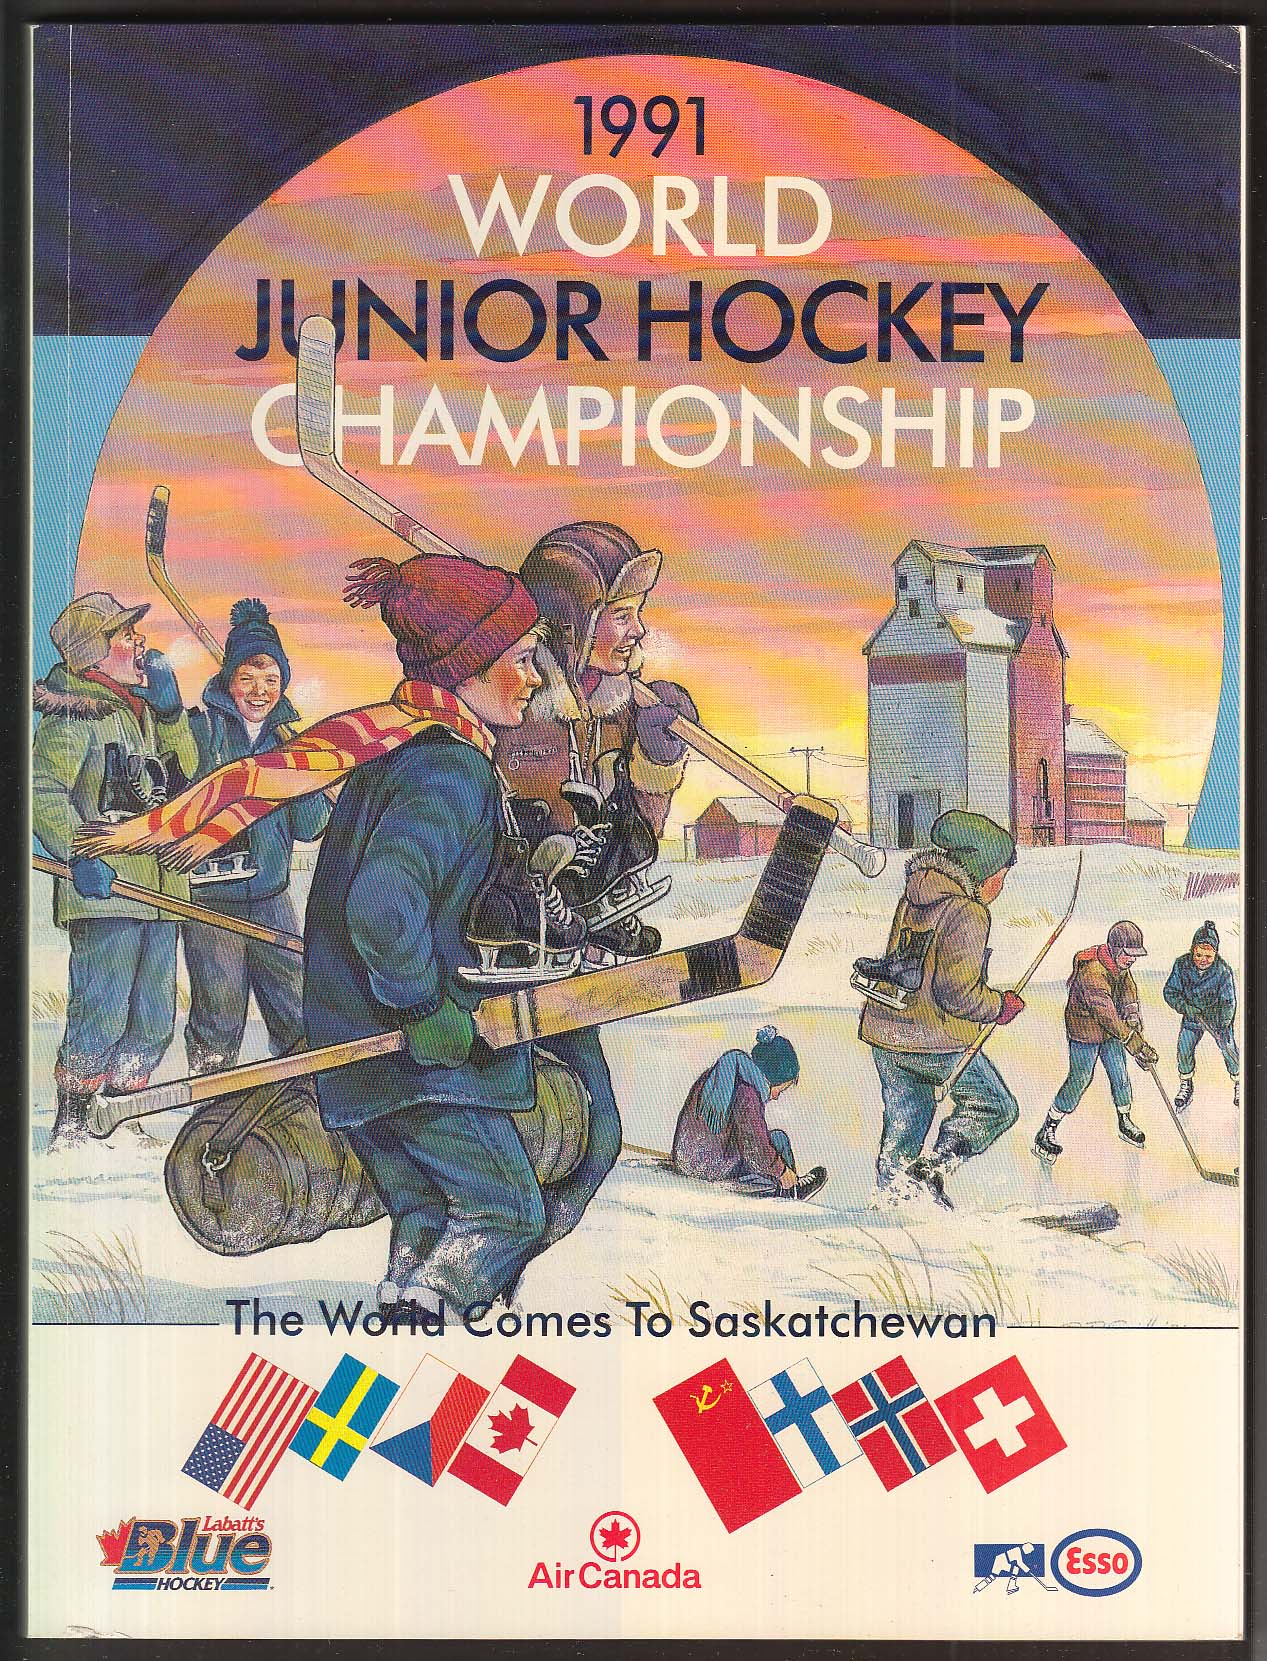 Canadian Hockey Special Edition 1991 World Junior Hockey Championship Program